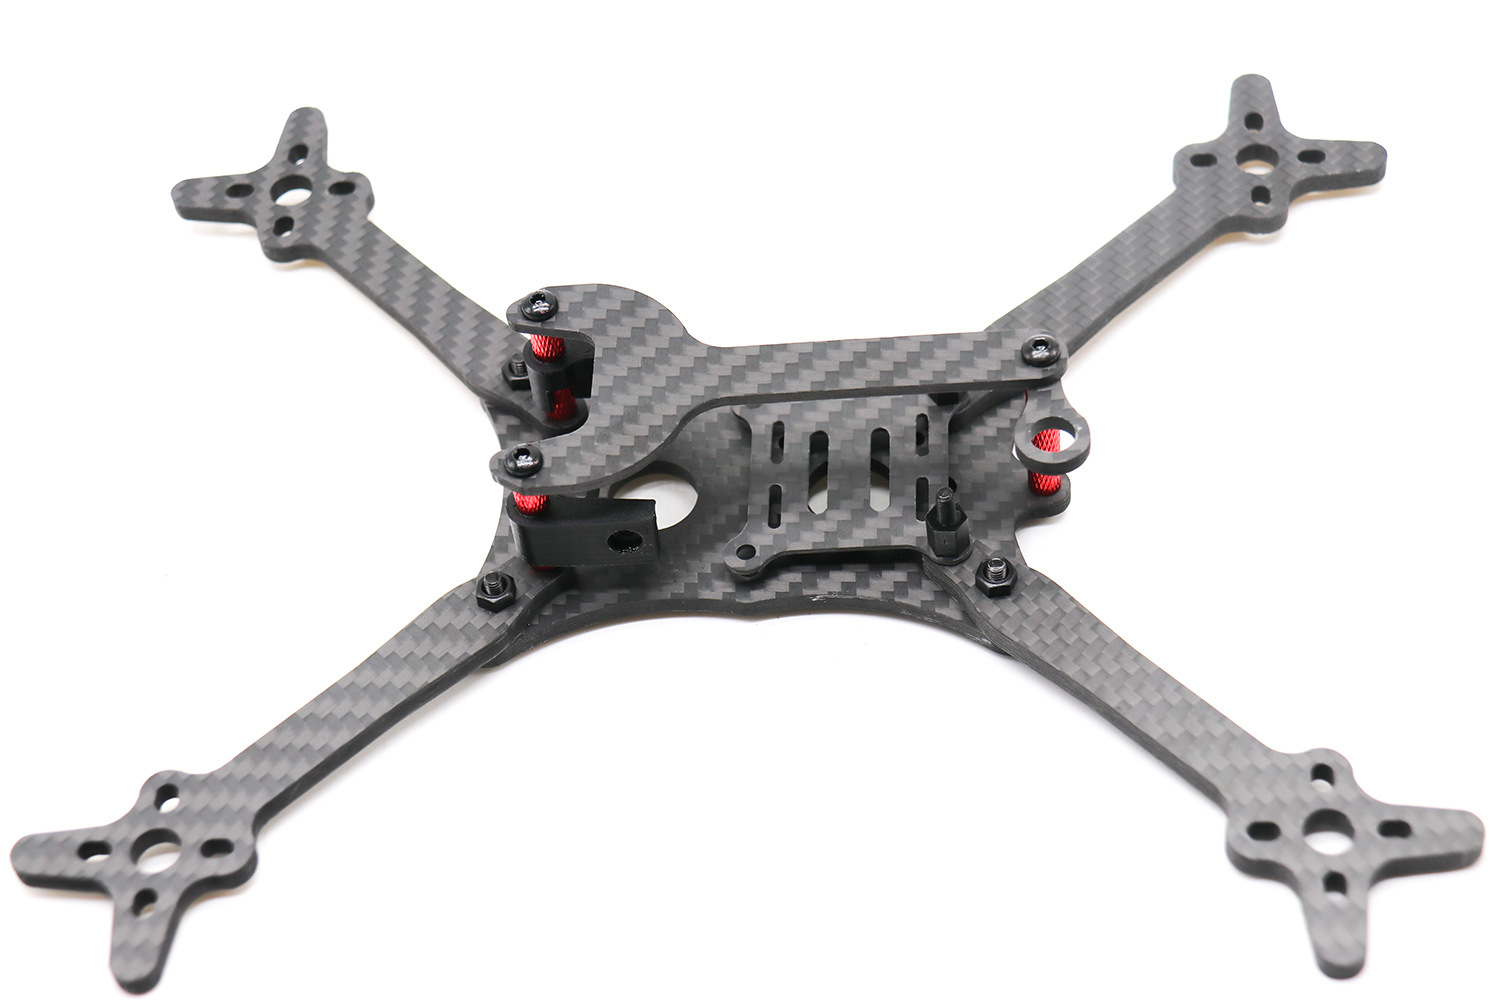 Are Jumping Through Machine 5 Inch Floss210 Wheelbase 210 Carbon Fiber FPV Unmanned Aerial Vehicle Four-axis Remote Control